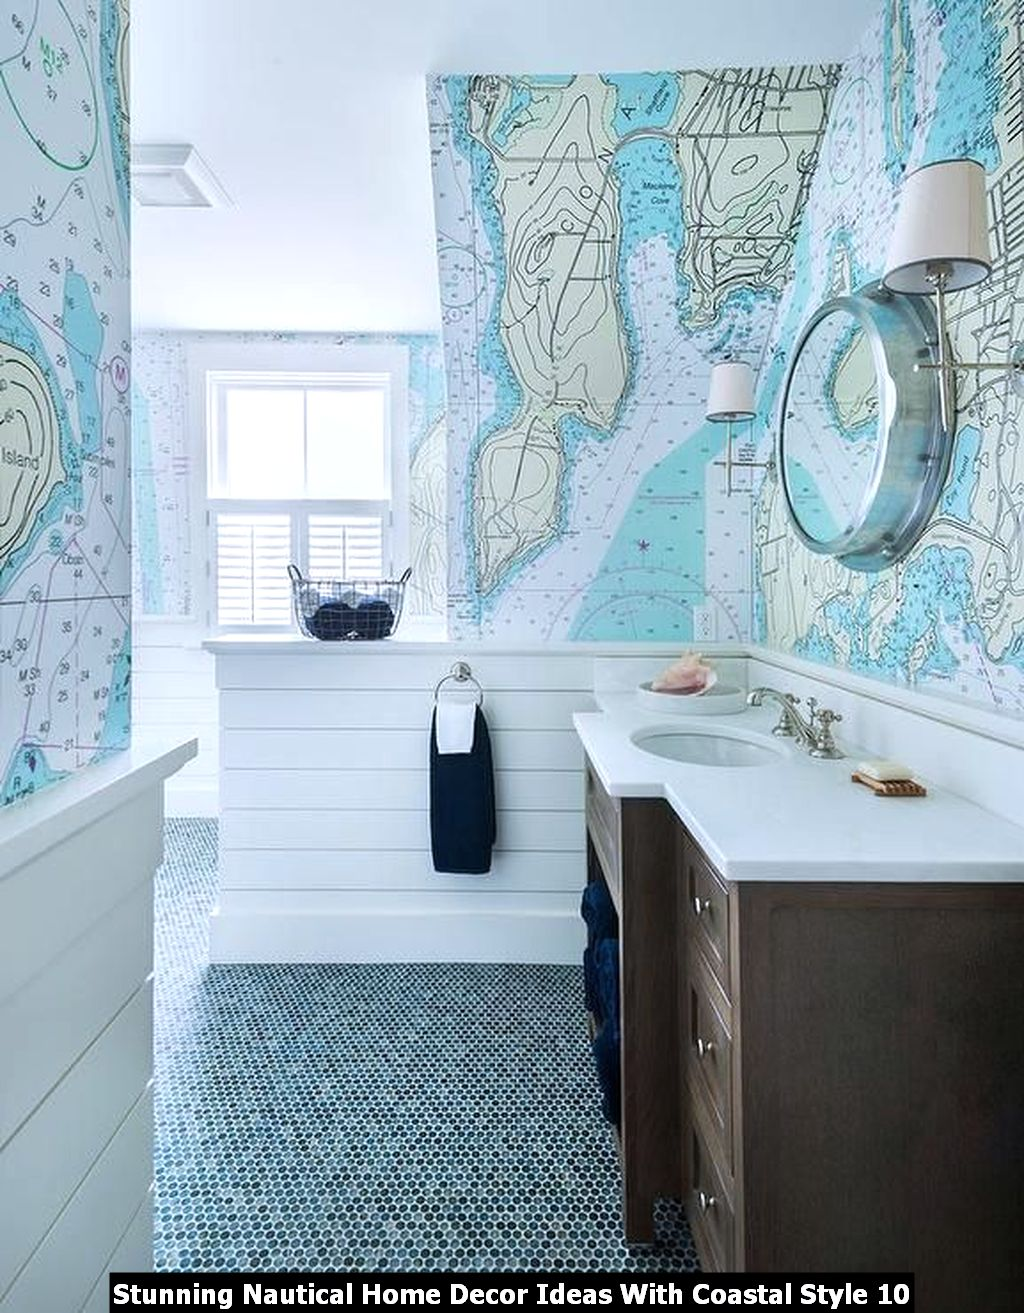 Stunning Nautical Home Decor Ideas With Coastal Style 10